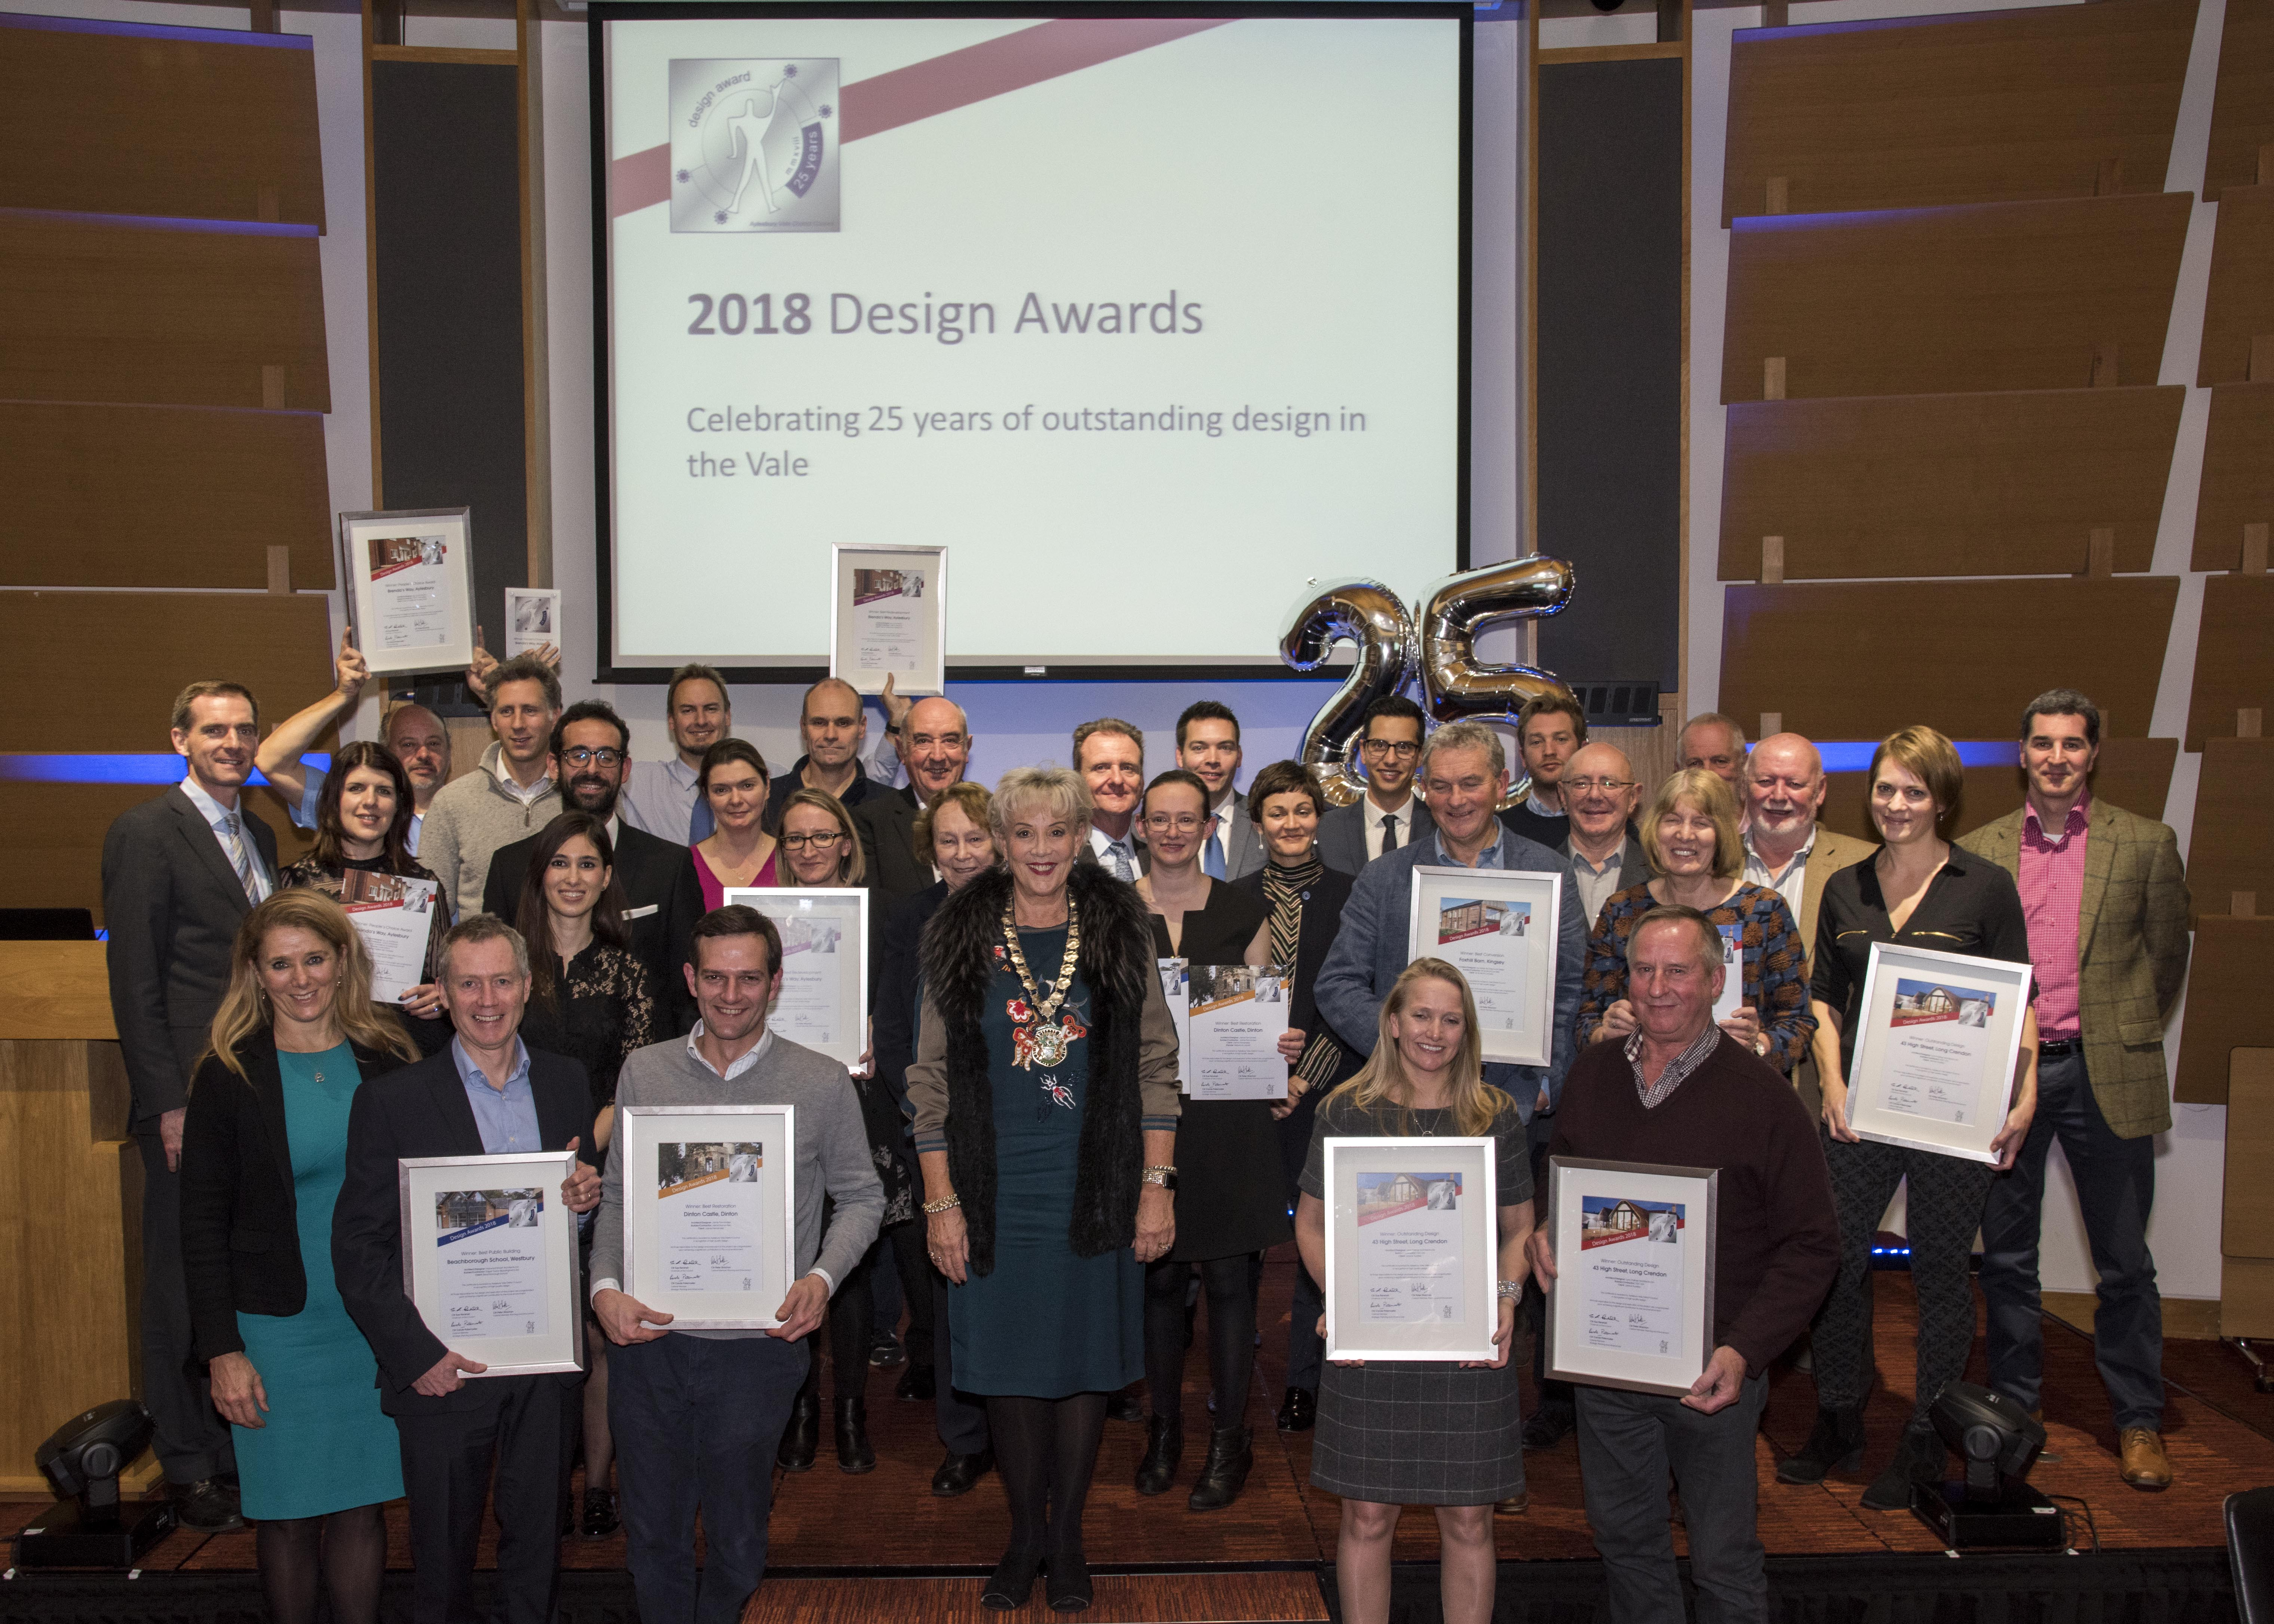 AVDC Design Awards 2018